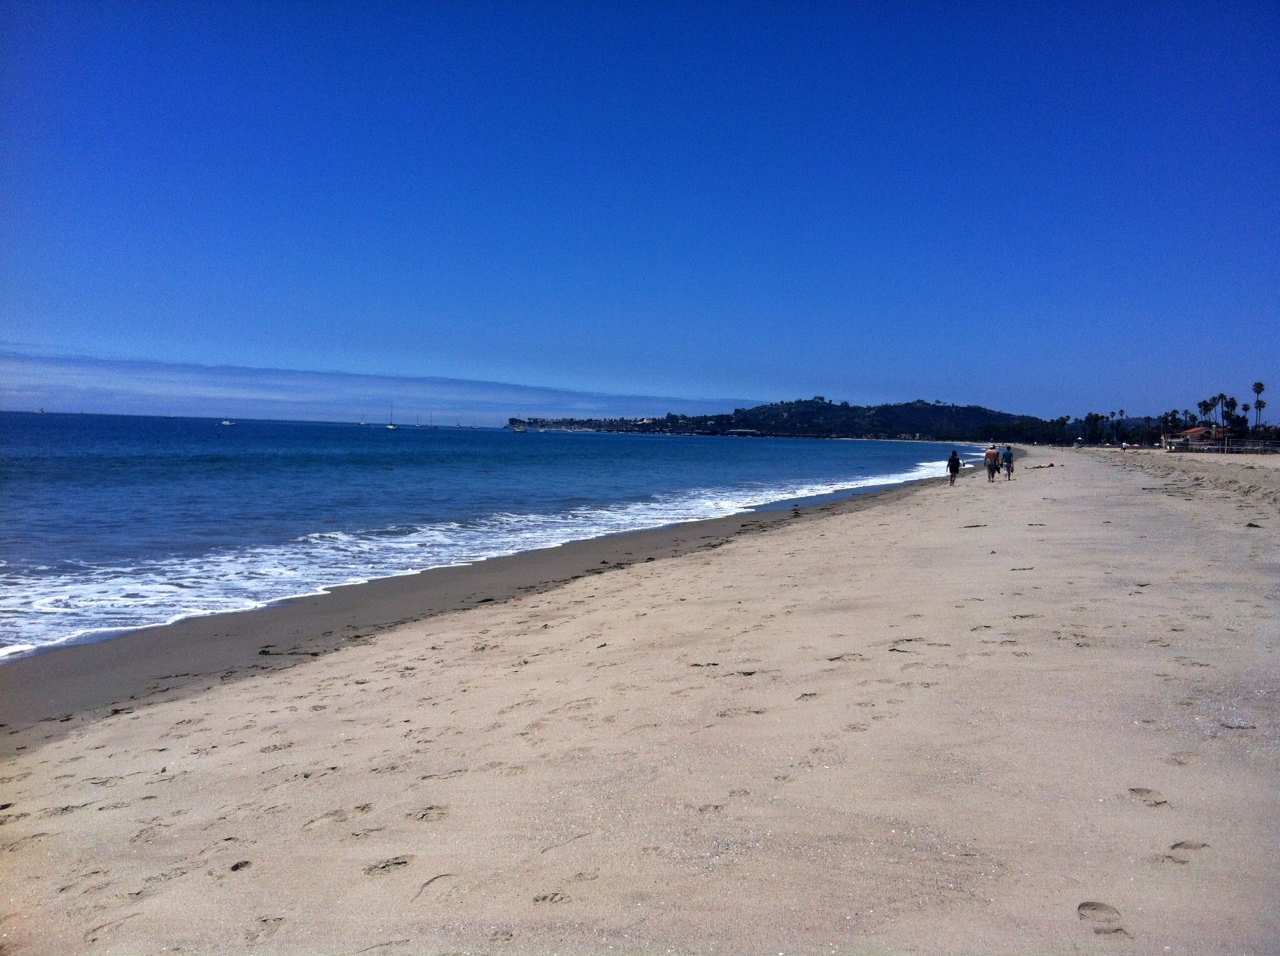 View looking back at SB from East Beach. Fave spot along my run!